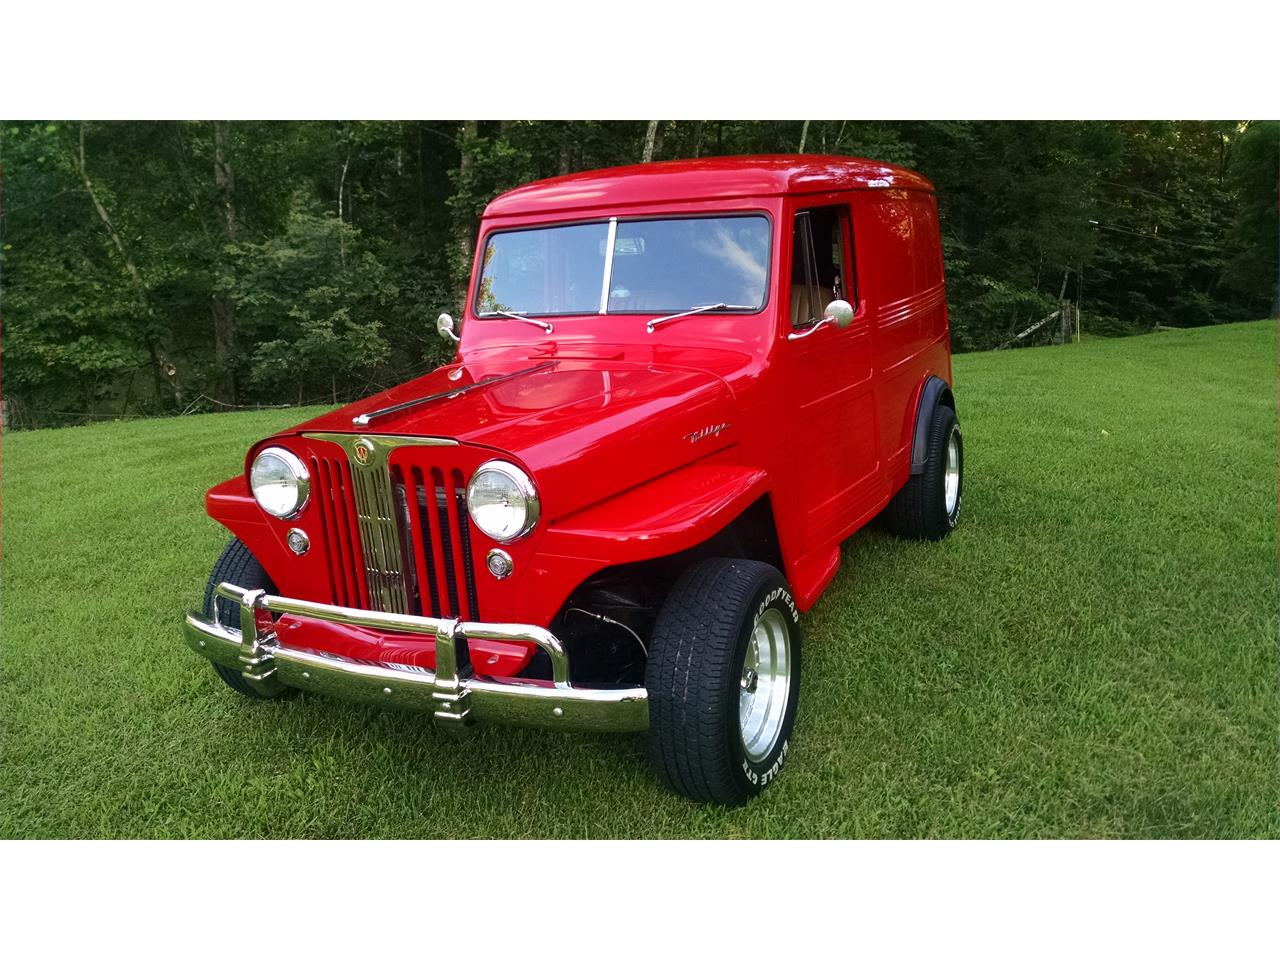 Large Picture of Classic '47 Willys Overland Station Wagon located in Fall Branch Tennessee - $56,000.00 Offered by a Private Seller - P9N7